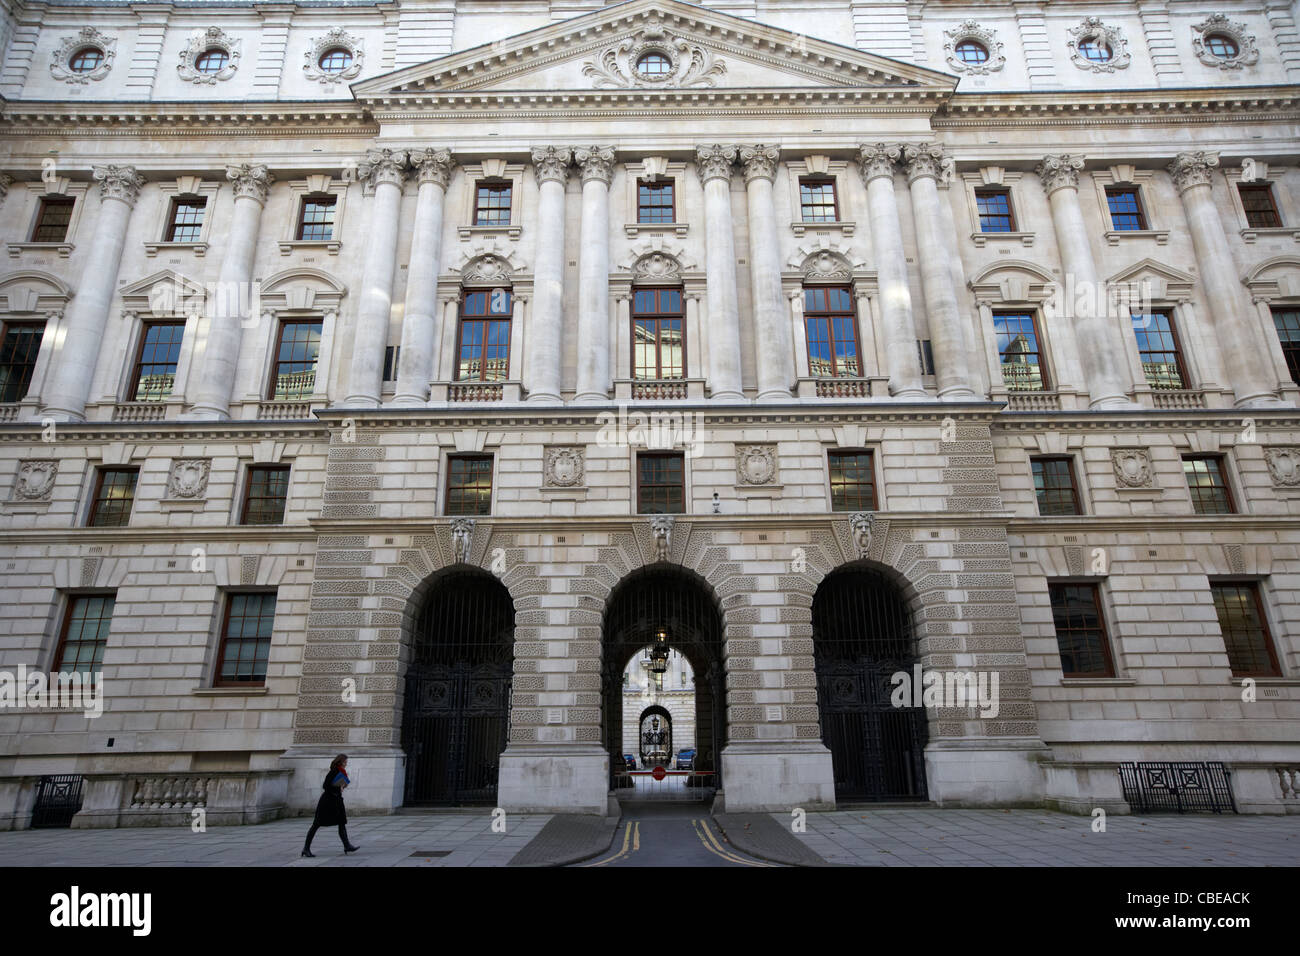 hm revenue and customs and hm treasury british government official building whitehall london england united kingdom - Stock Image